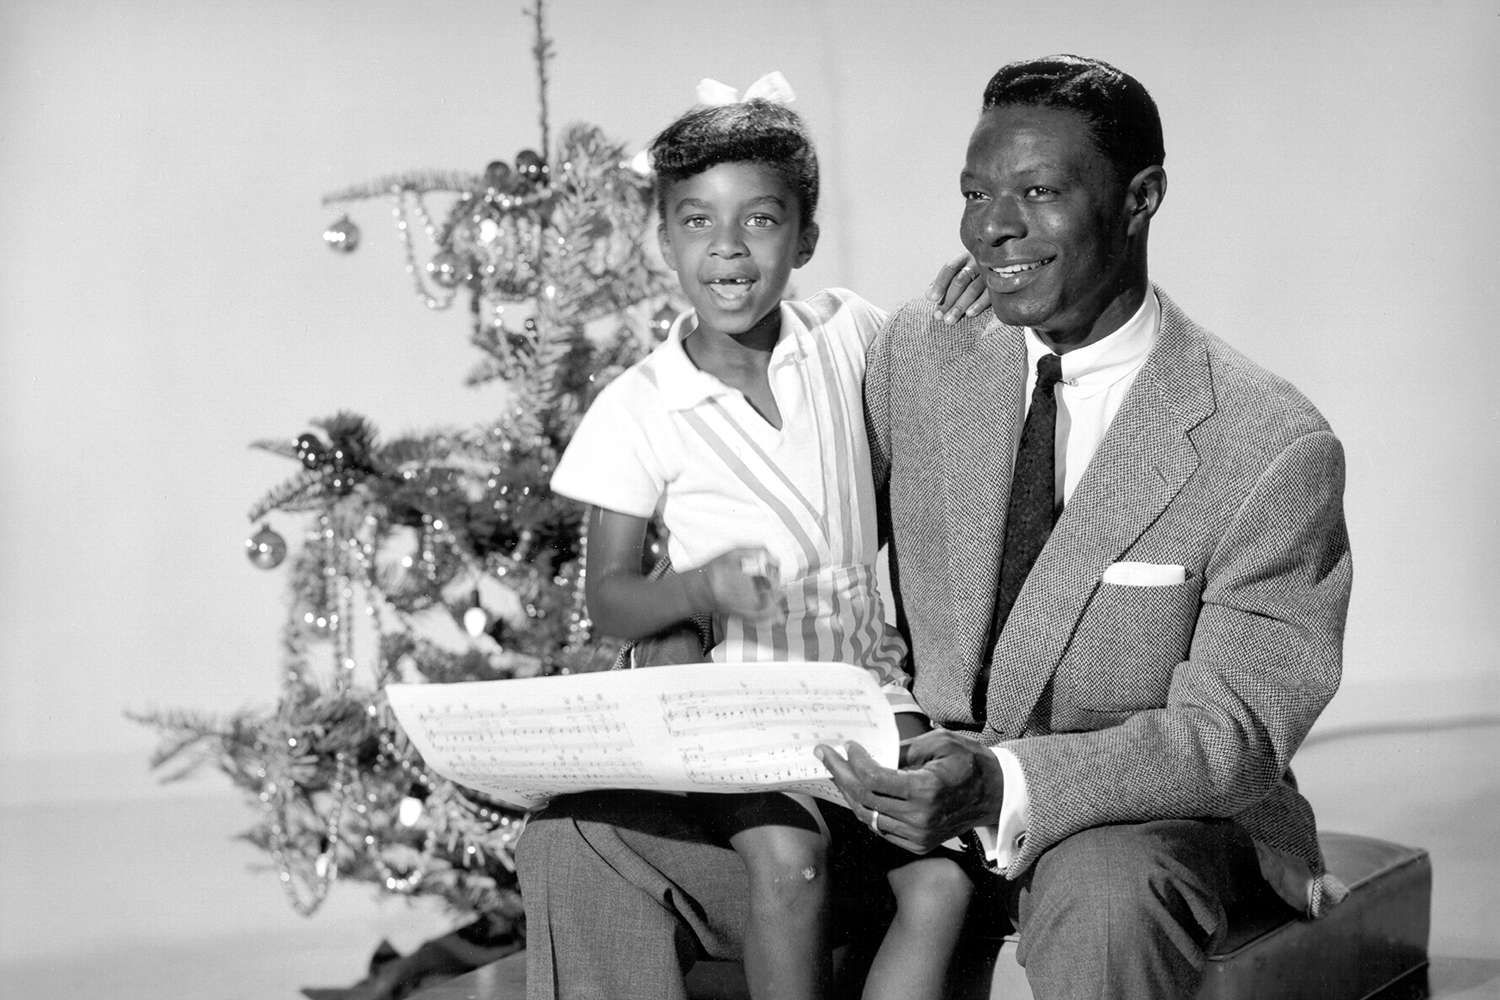 the christmas song nat king cole 1961